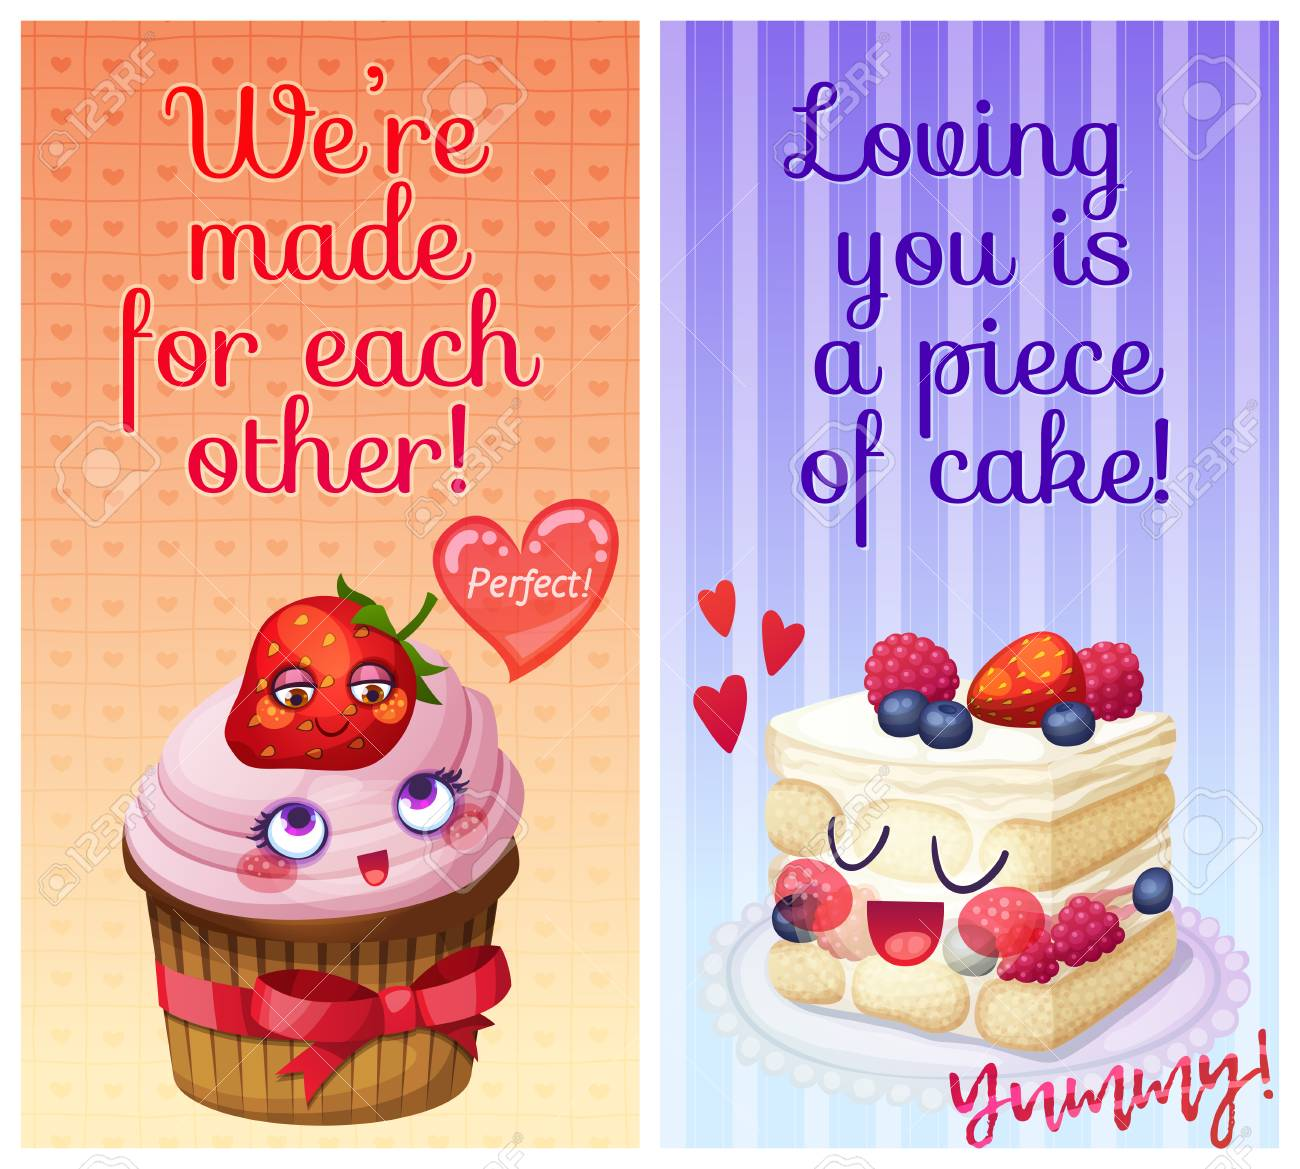 Cute food characters with funny flirty quotes